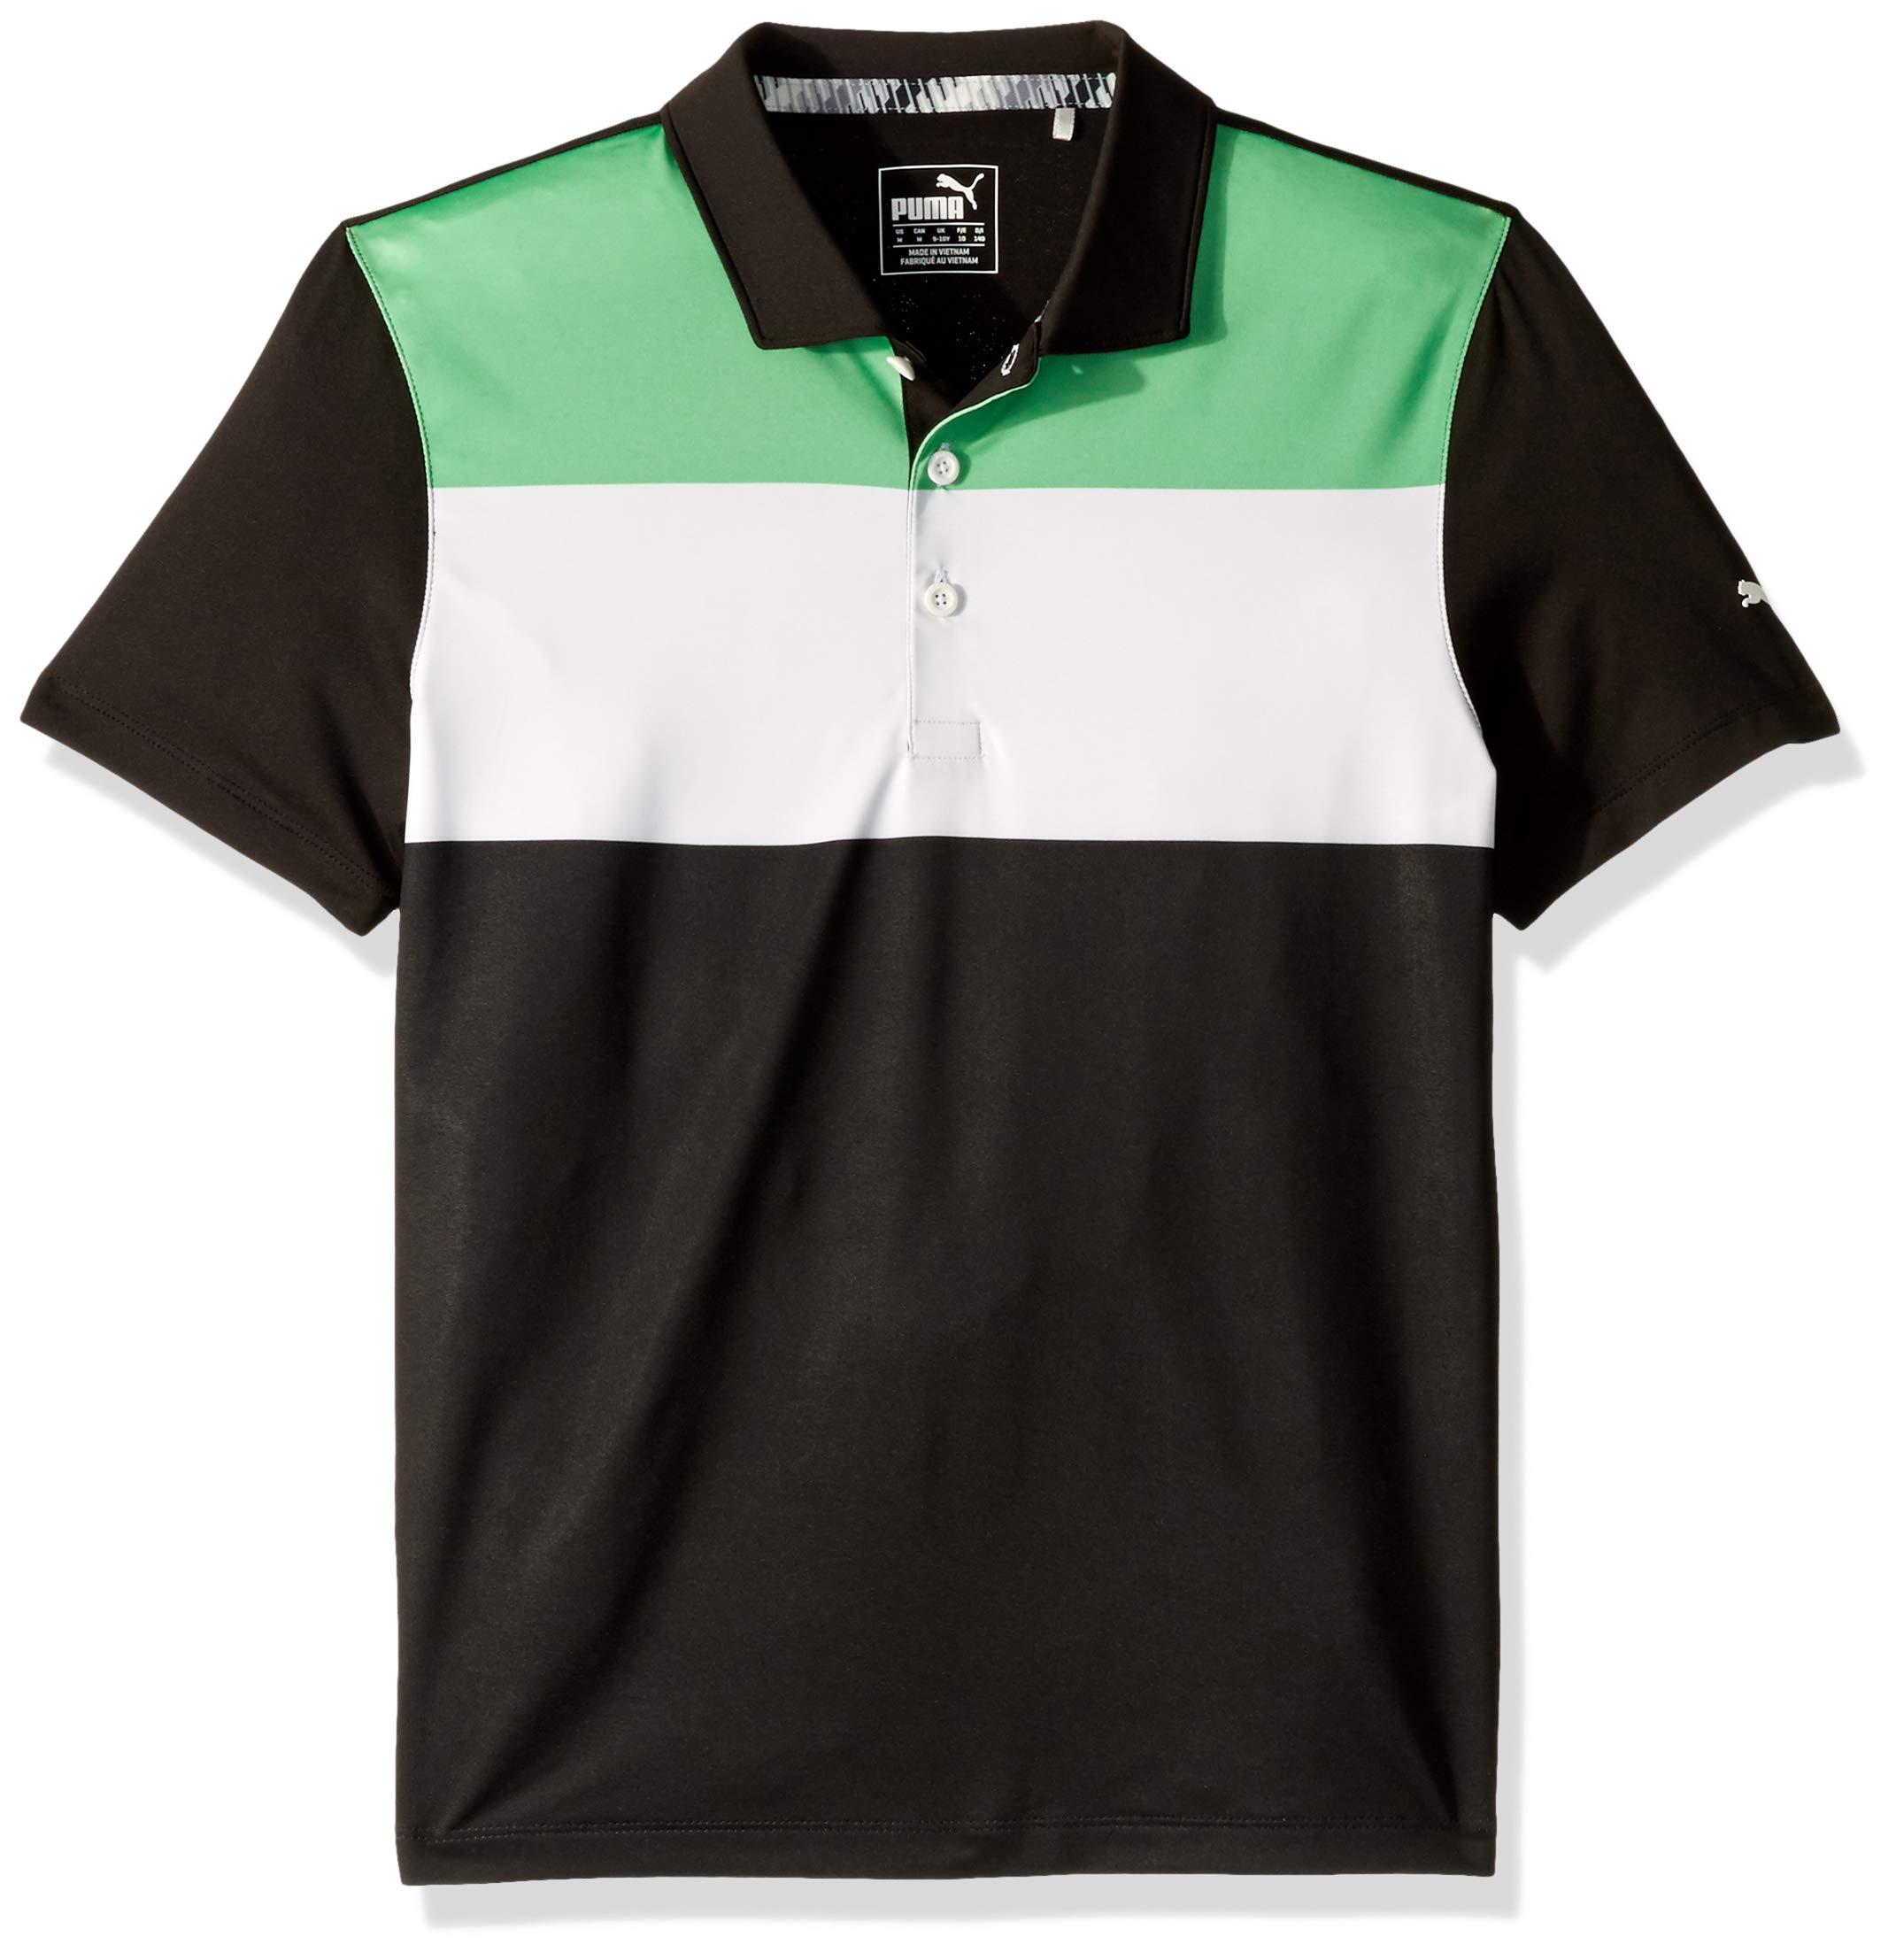 Puma Golf Boys 2019 Nineties Polo, Irish Green-Puma Black, x Small by PUMA